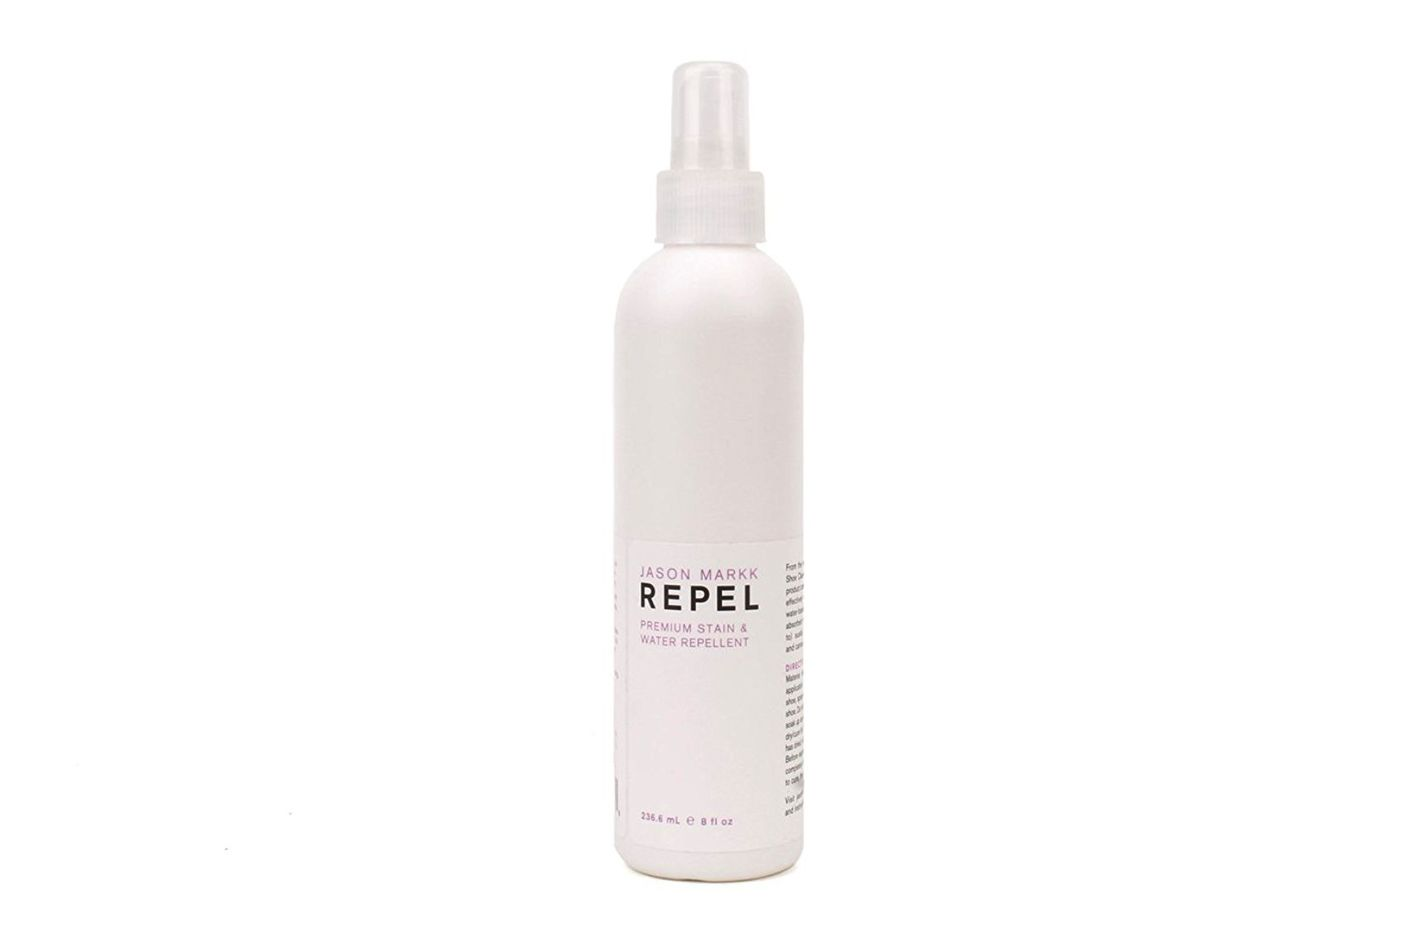 Jason Markk Repel Premium Stain and Water